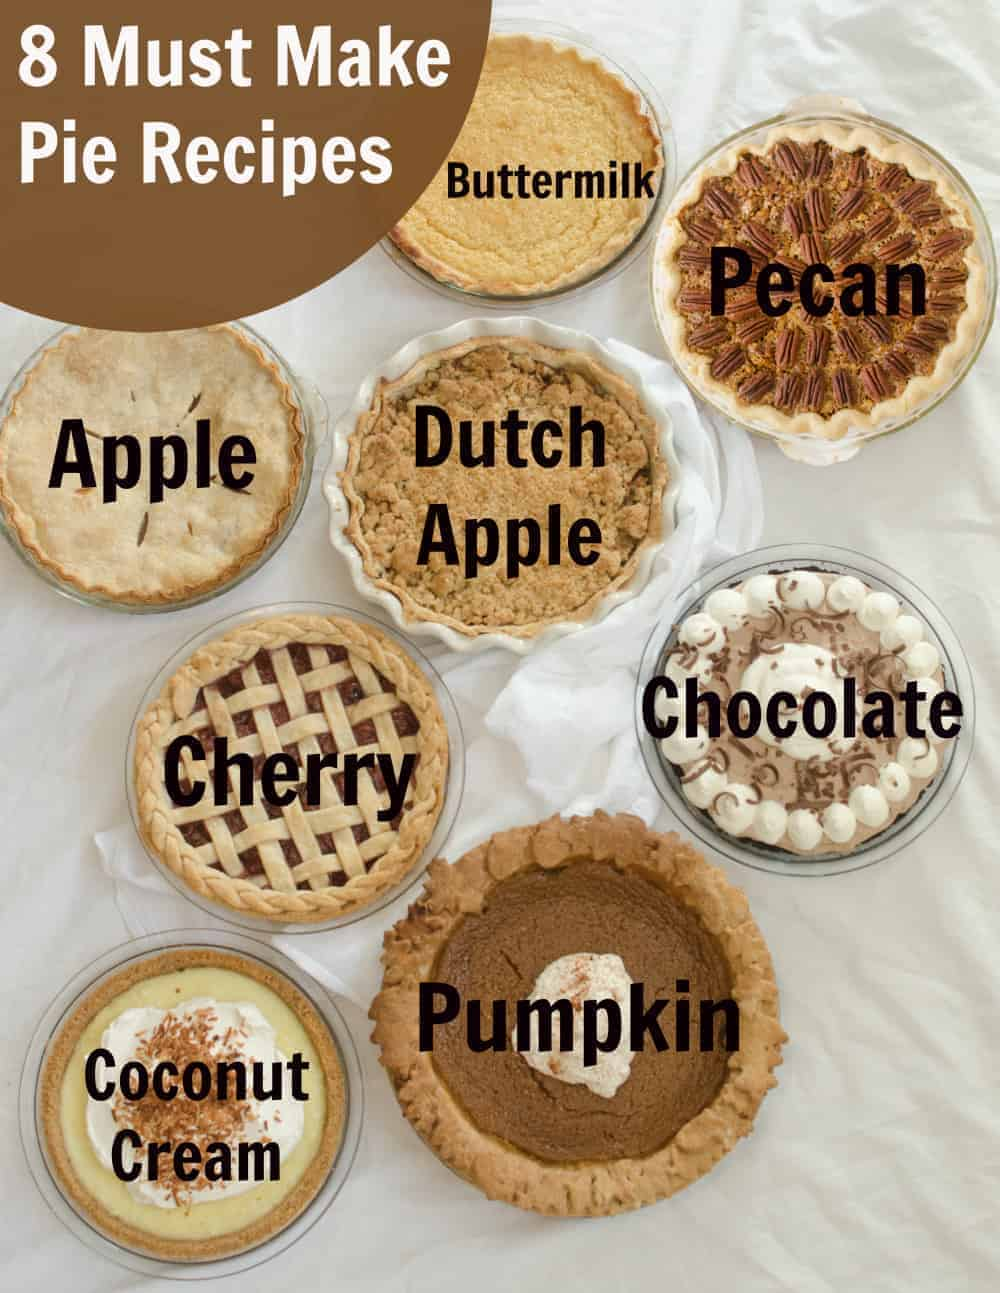 8 Must-Make Pie Recipes for Your Holidays